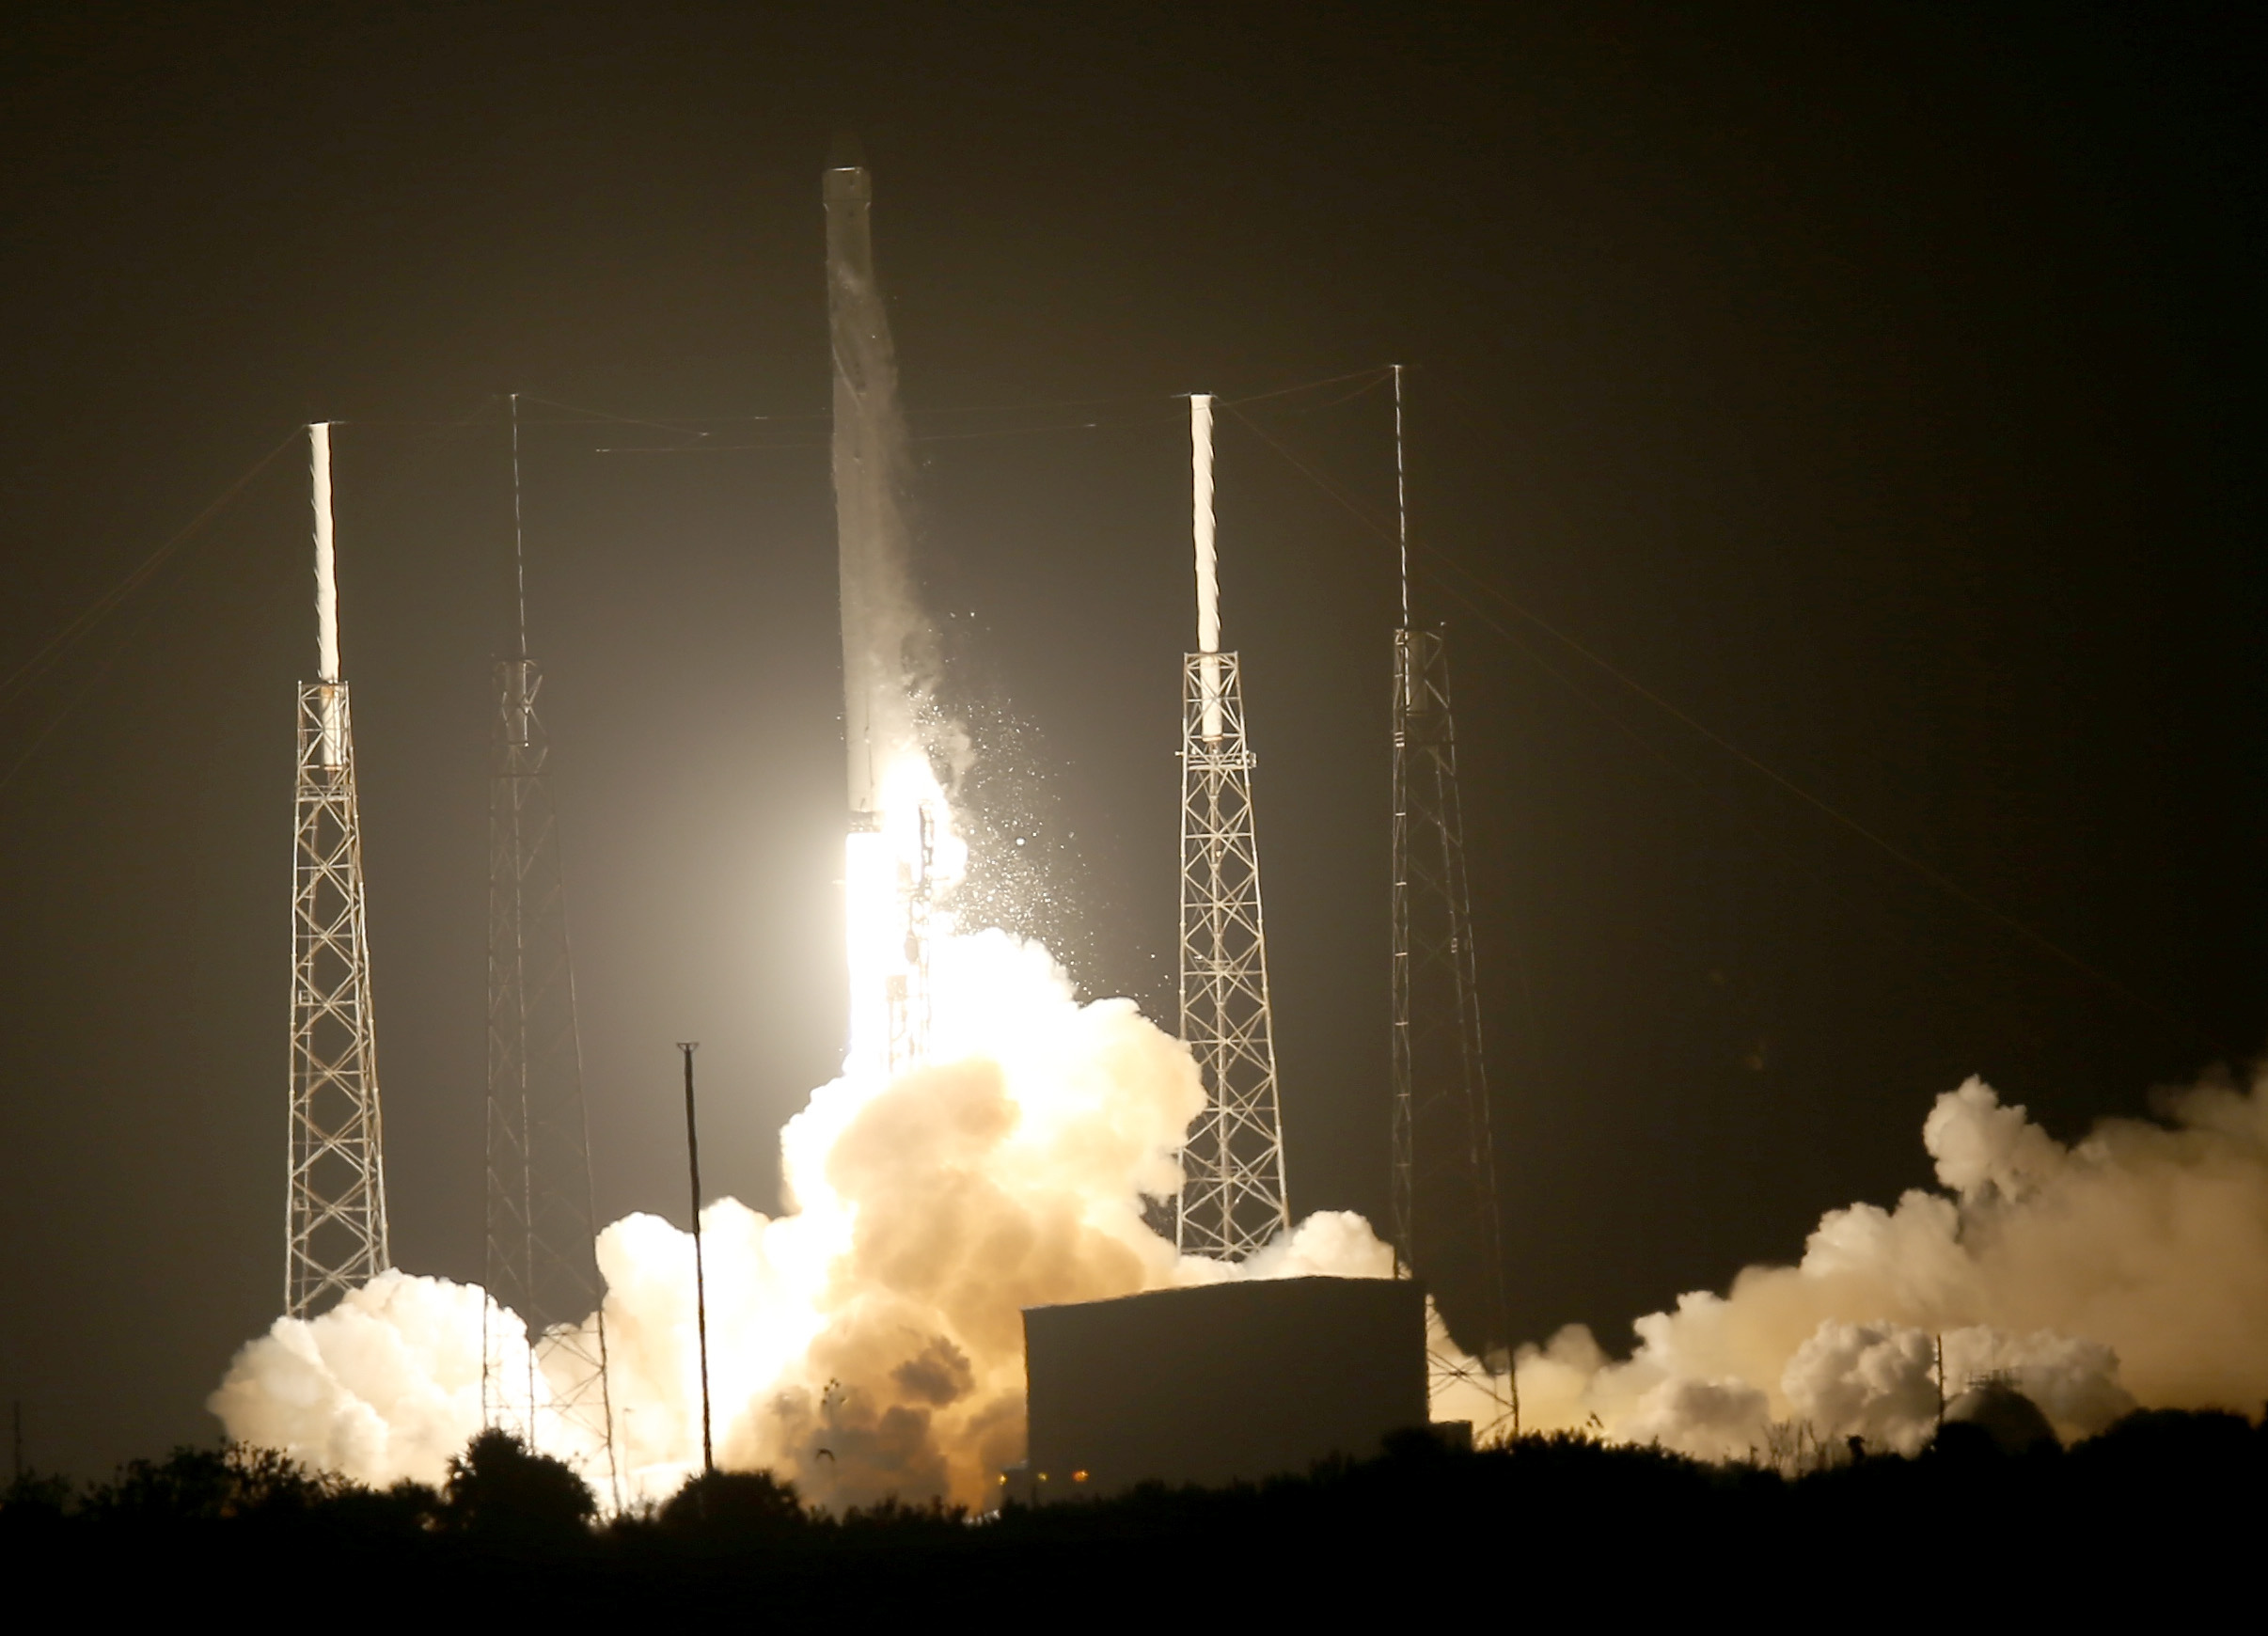 Google, Fidelity make $1 billion bet on Elon Musk's SpaceX